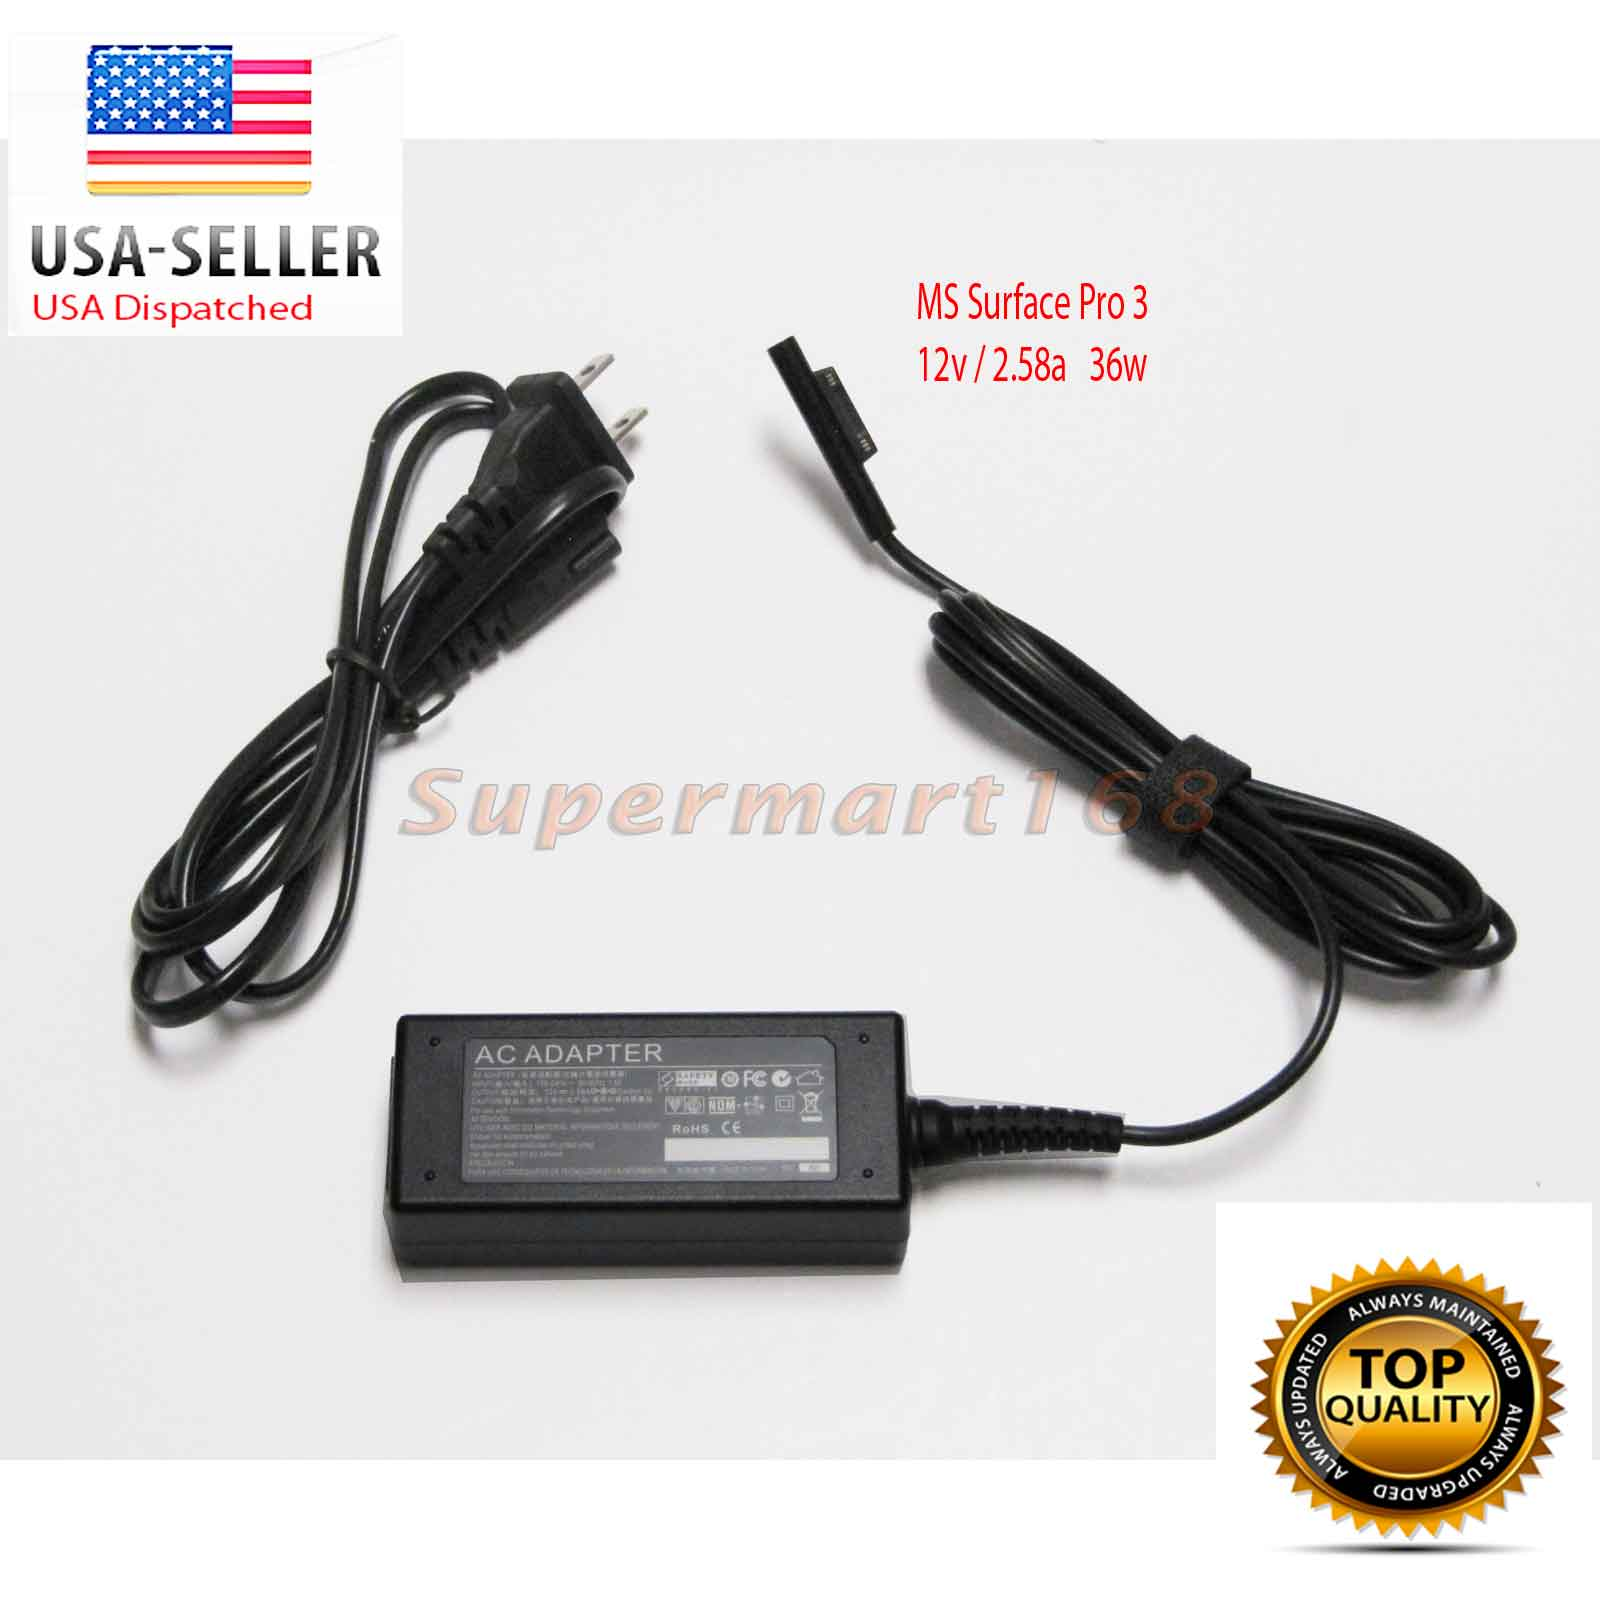 12V 2.58A 36W Charger Power Supply Adapter for Microsoft Surface Pro 3 Tablet Laptop Power Supply Charger Cord Plug (ZA-MS-36W)